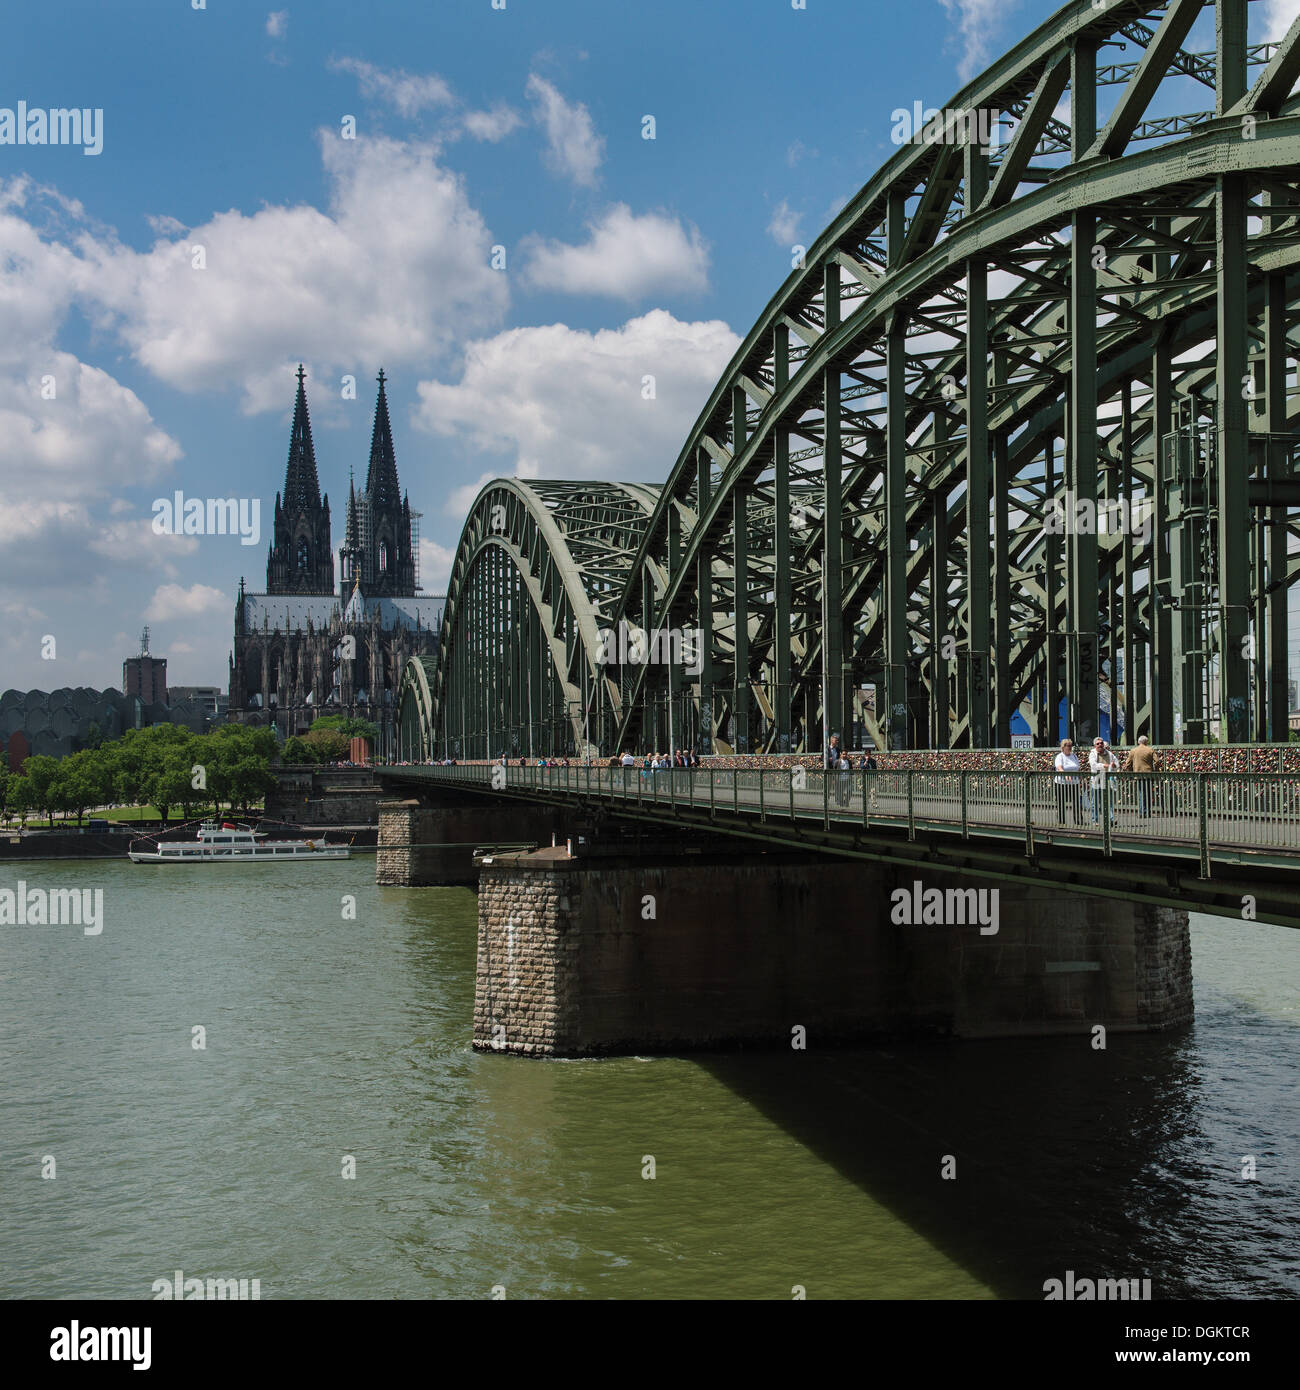 View across the Rhine River towards Cologne Cathedral and Hohenzollern Bridge, North Rhine-Westphalia - Stock Image